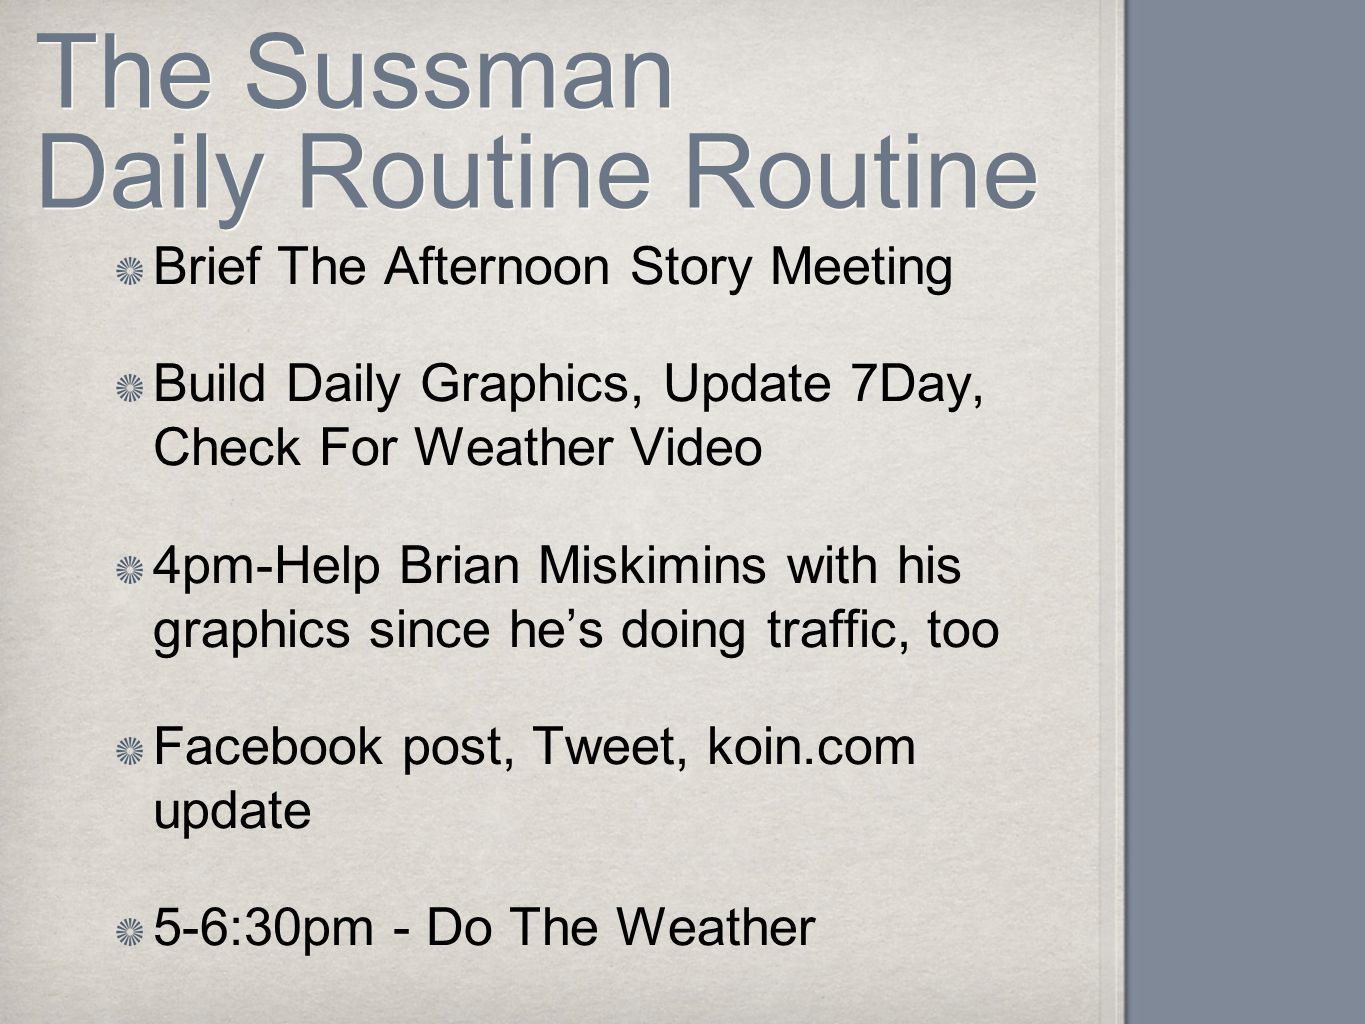 The Sussman Daily Routine Routine Brief The Afternoon Story Meeting Build Daily Graphics, Update 7Day, Check For Weather Video 4pm-Help Brian Miskimins with his graphics since he's doing traffic, too Facebook post, Tweet, koin.com update 5-6:30pm - Do The Weather